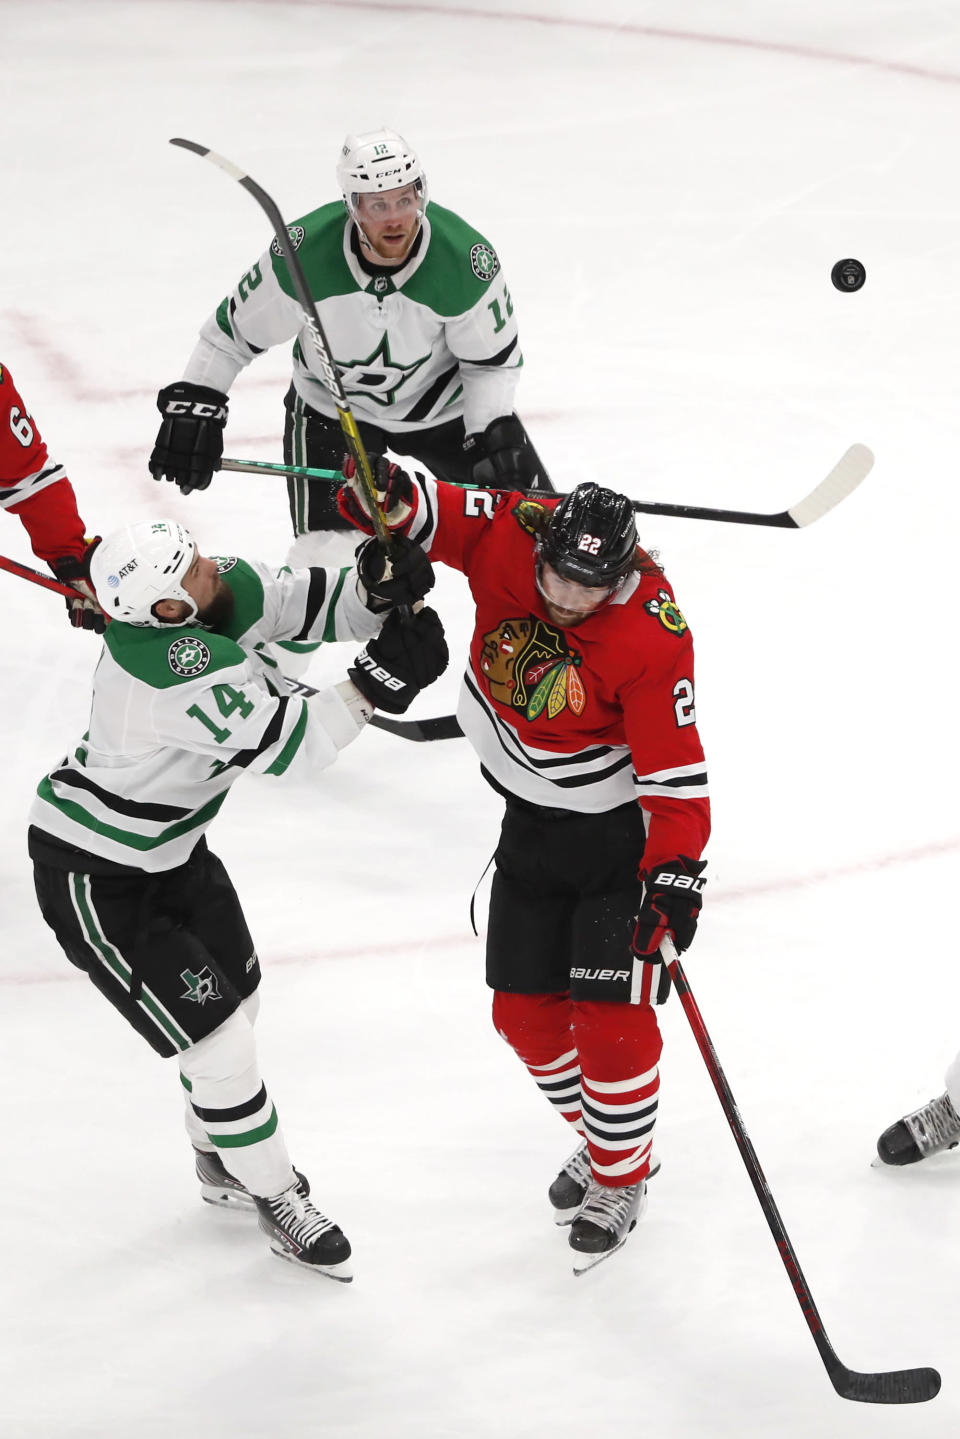 Dallas Stars left wing Jamie Benn (14) and Chicago Blackhawks center Ryan Carpenter (22) battle for the puck during the second period of an NHL hockey game Tuesday, April 6, 2021, in Chicago. (AP Photo/Jeff Haynes)